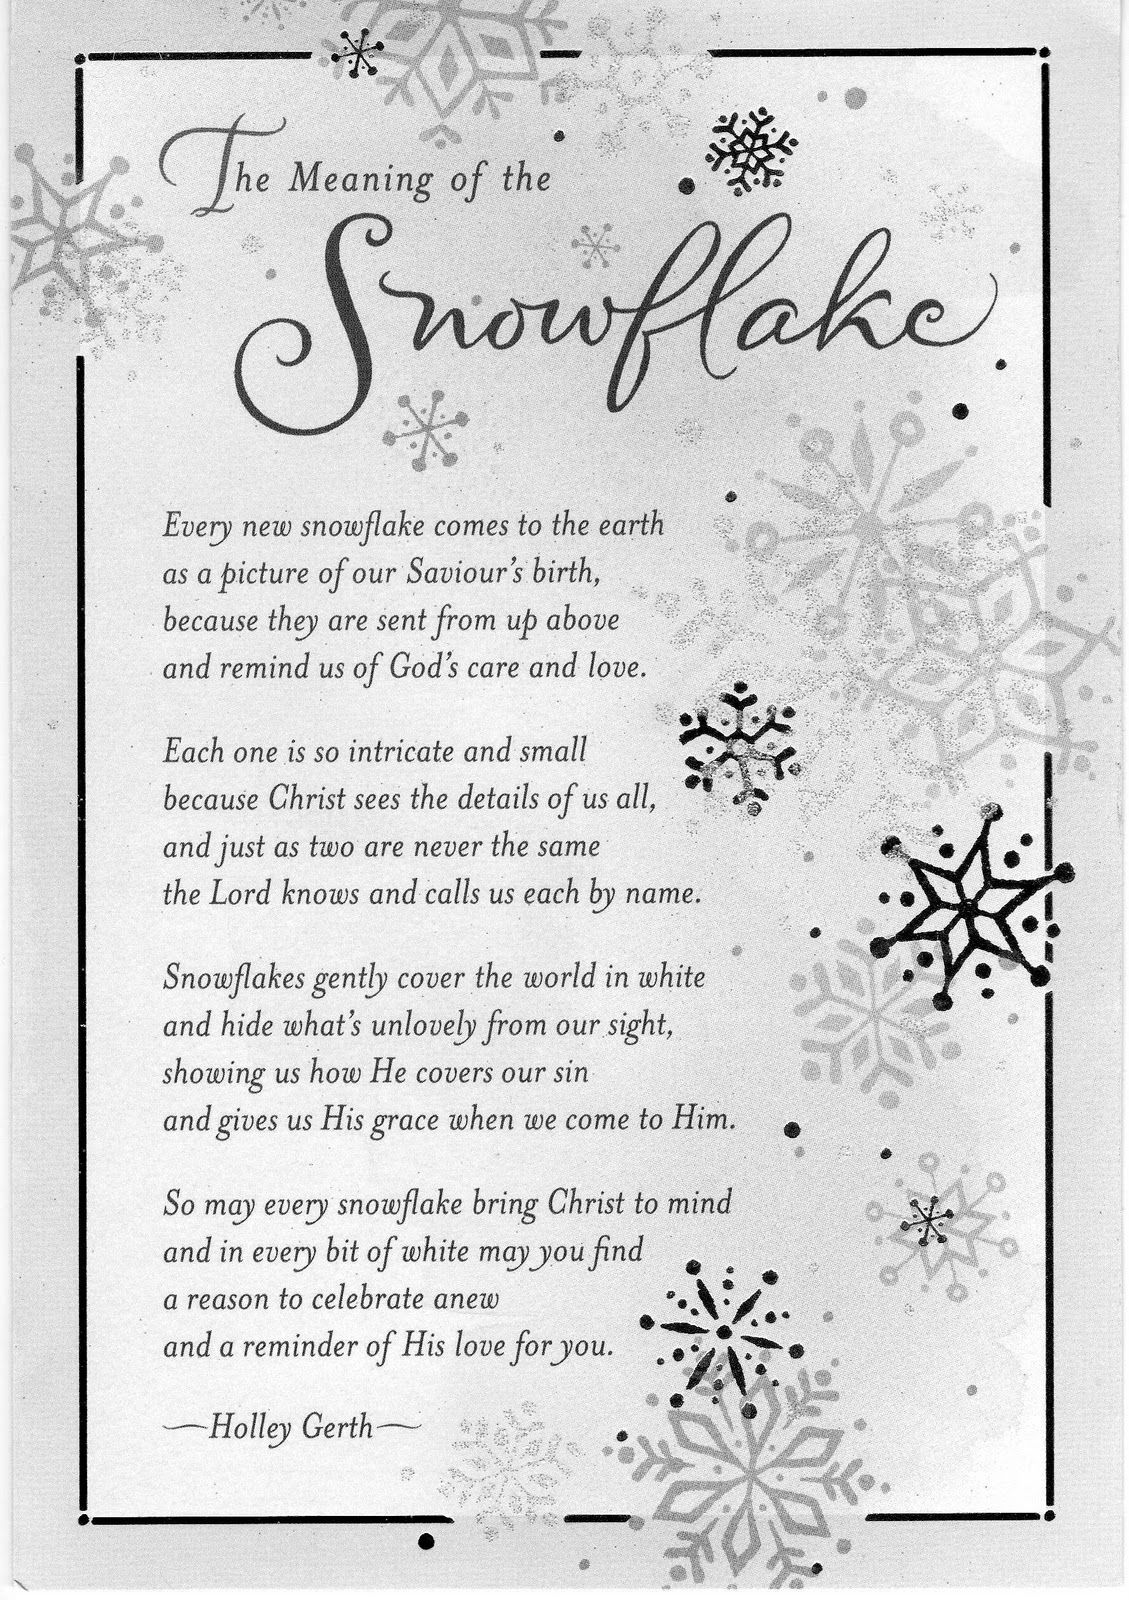 Pin by Ted Thomas on christmas | Pinterest | Poem, Snowman and ...